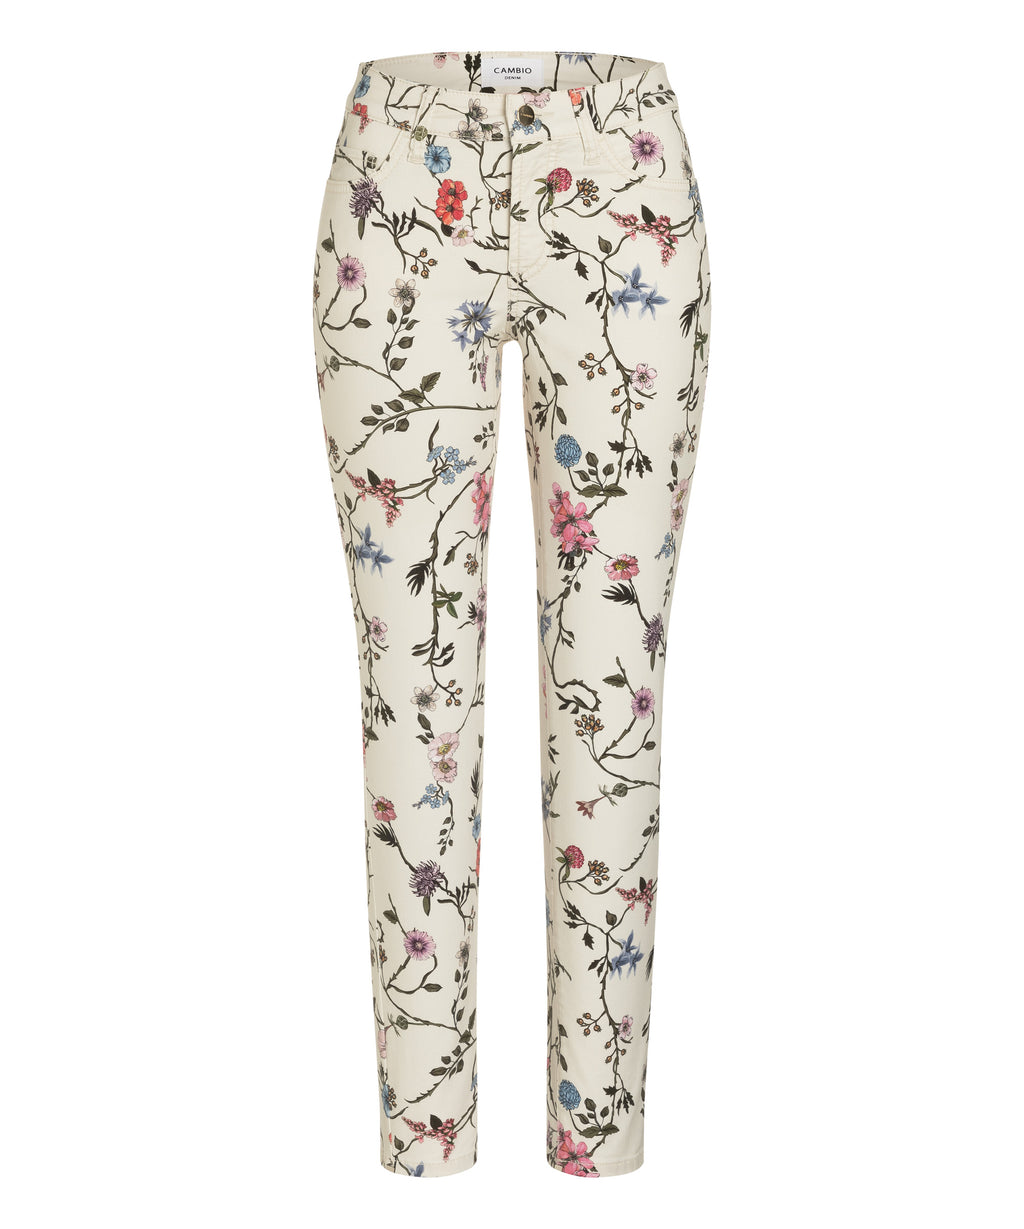 PARIS FLORAL CROP JEAN